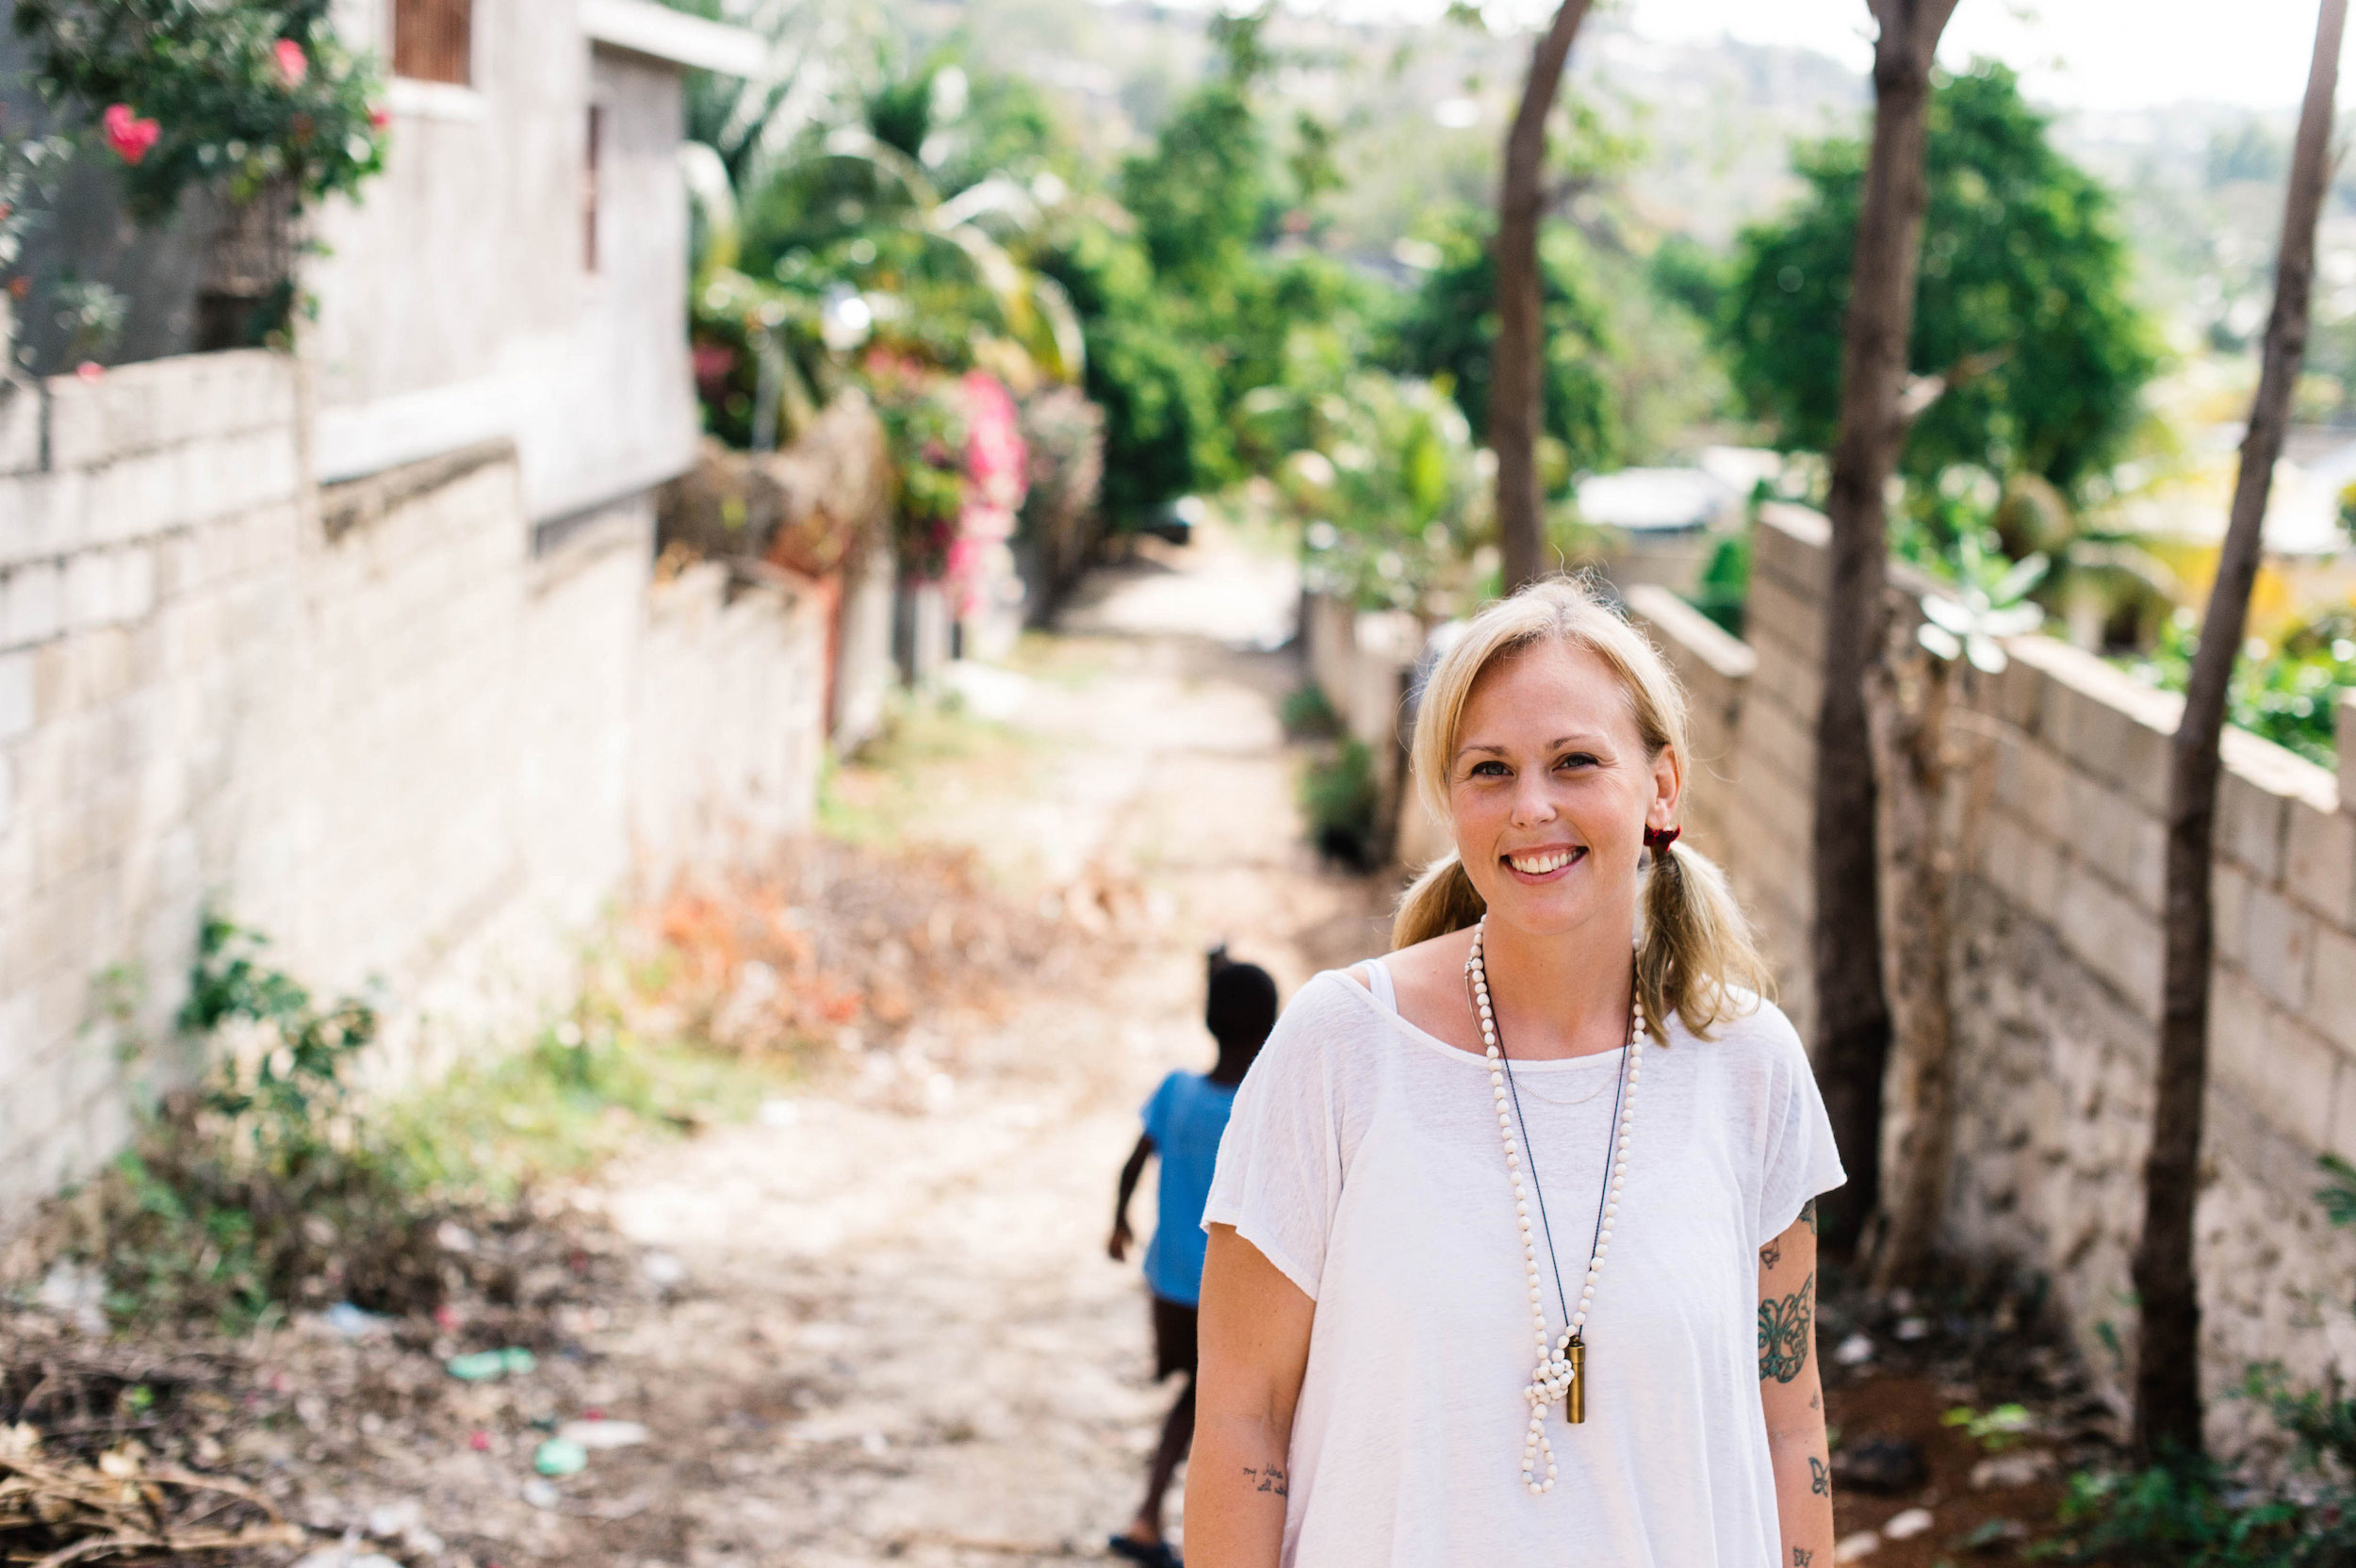 ,Blonde-haired smiling lady in a white top photographed outdoors in Haiti